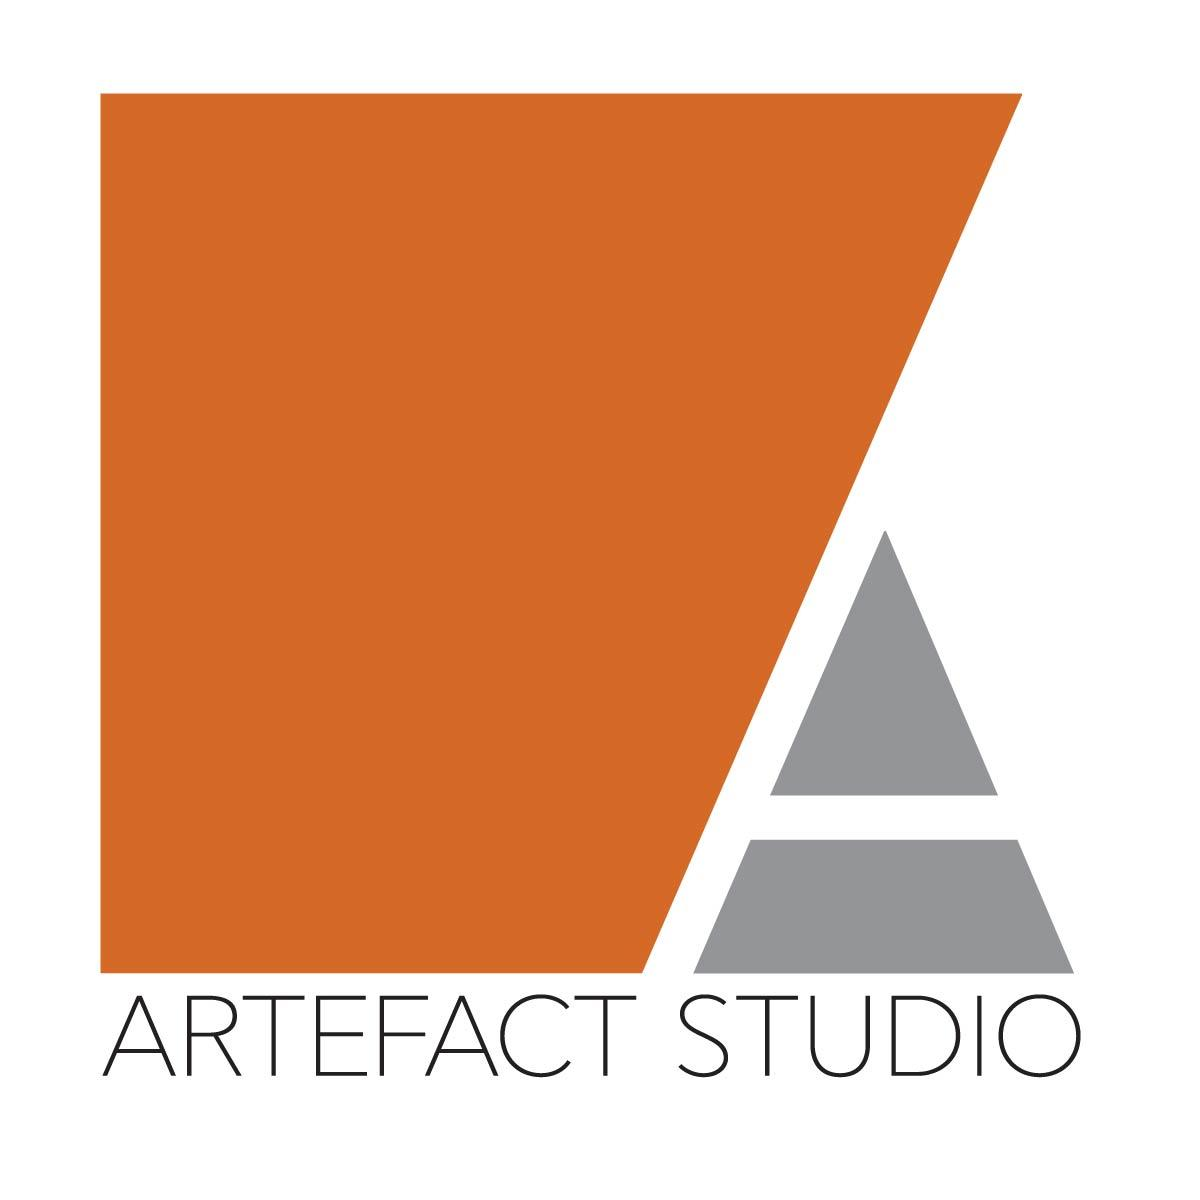 ARTEFACT studio inc.